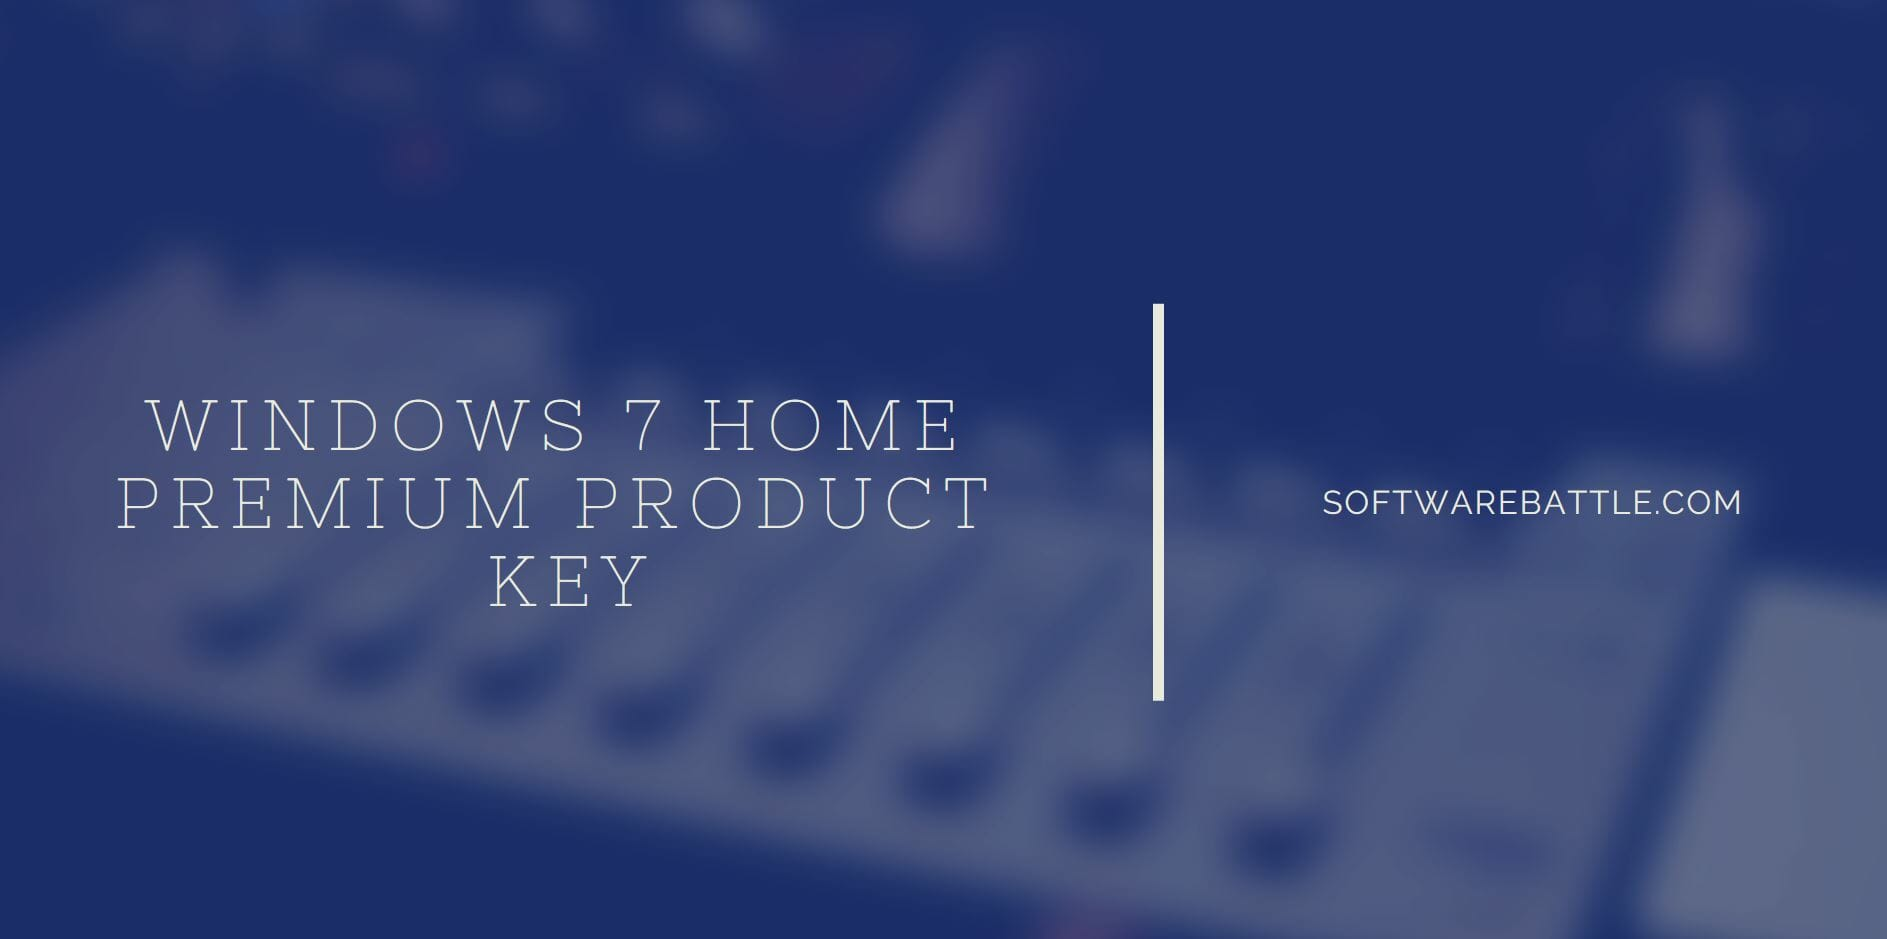 download windows 7 home premium product key generator